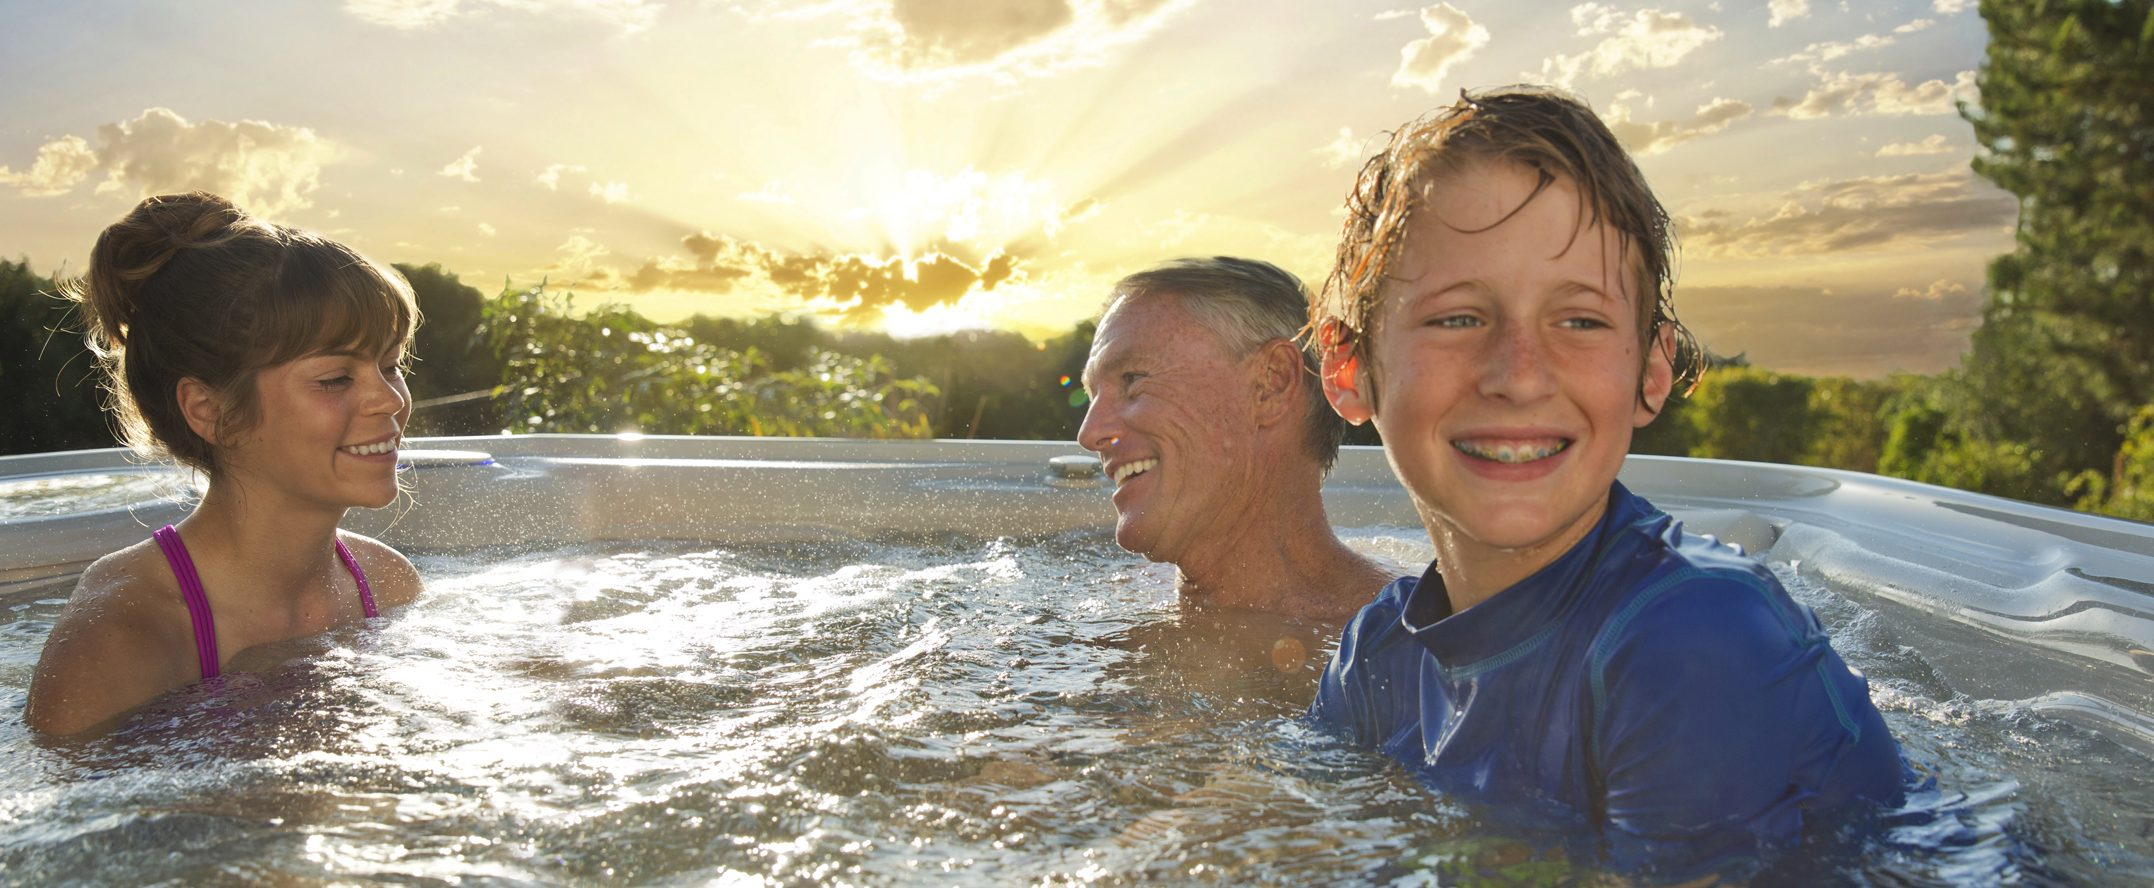 New Research for Hydrotherapy in the Treatment of Autism